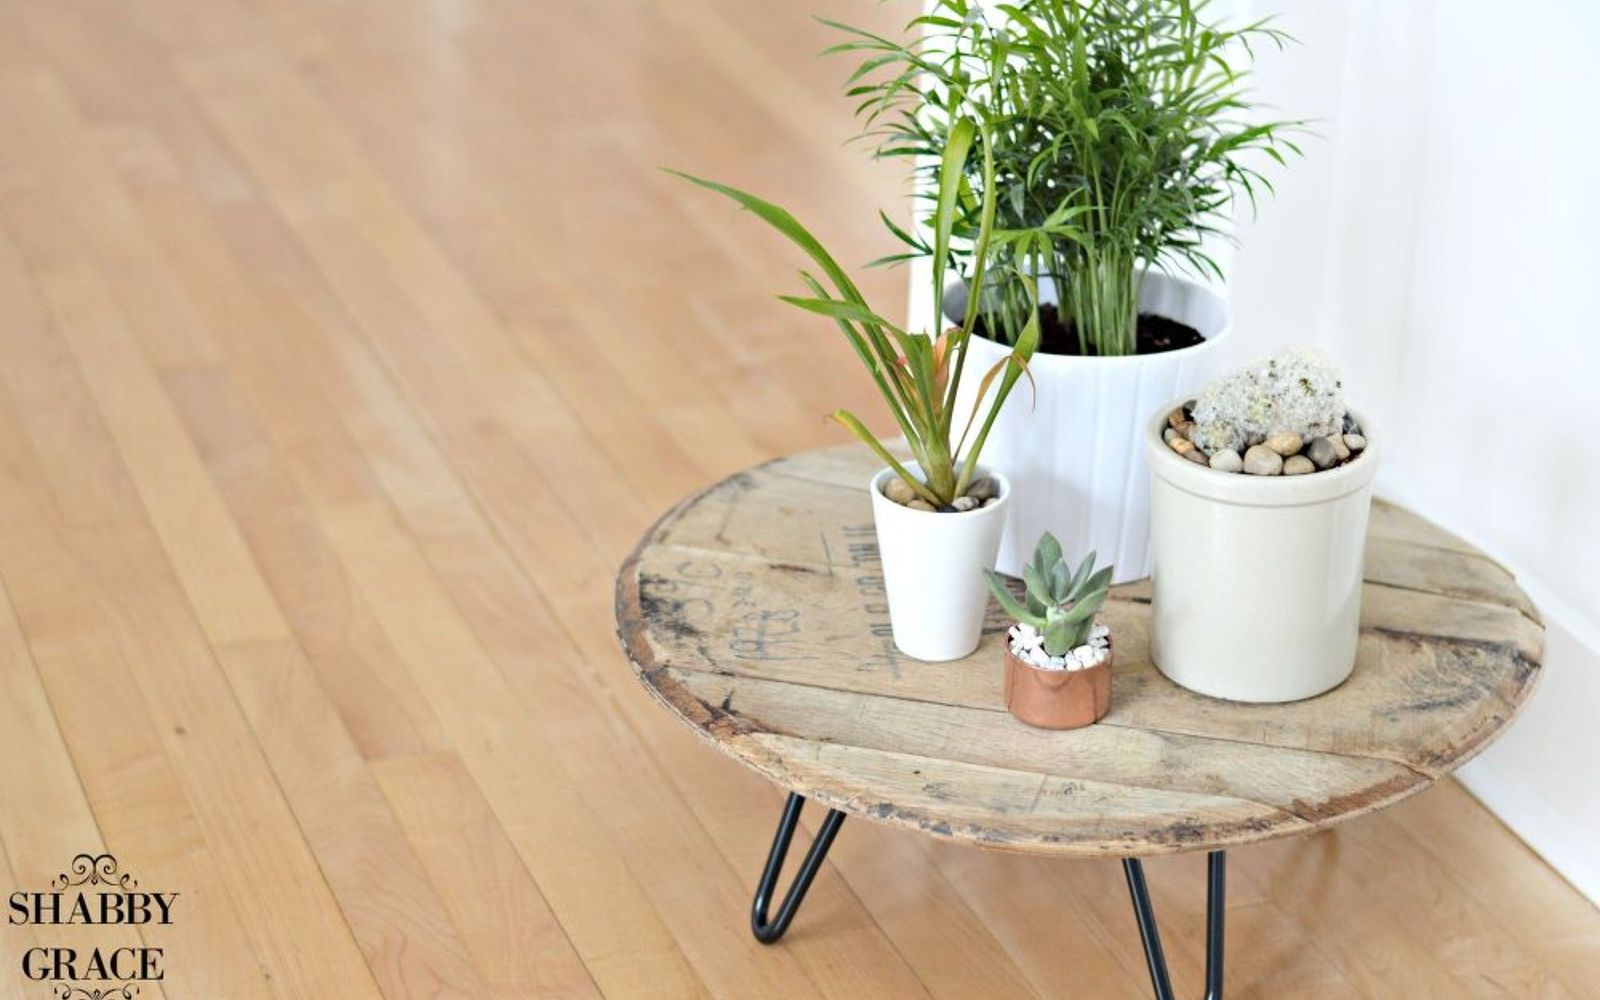 s these are the hottest diy spring trends of 2016, crafts, seasonal holiday decor, Display clusters of greenery